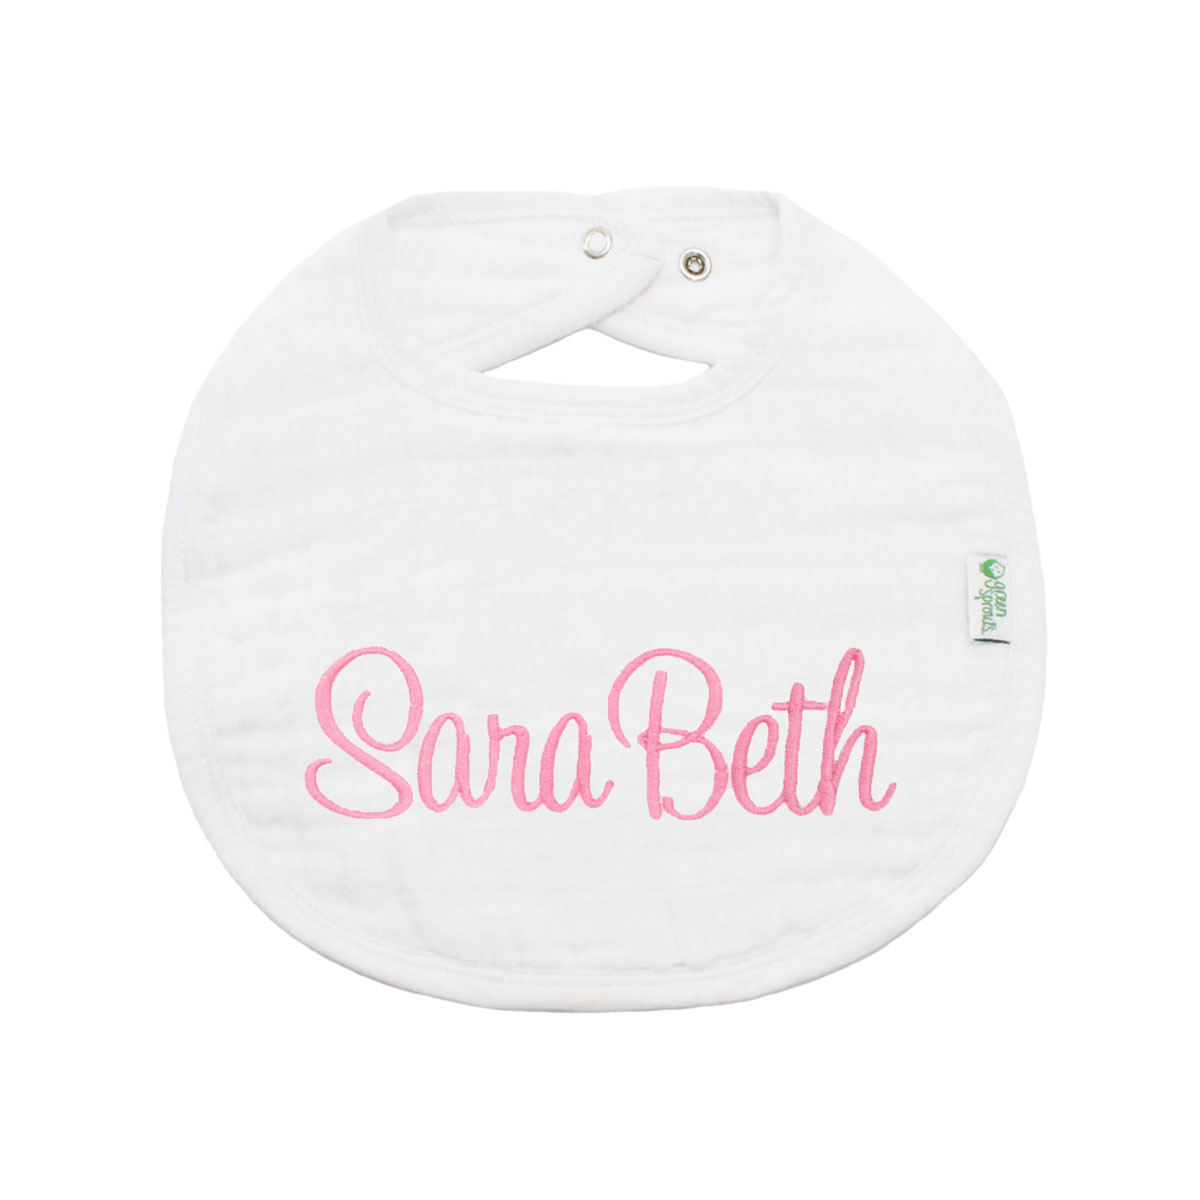 The Tot Organic Cotton White Bib with Personalized Monogram in Sara Beth